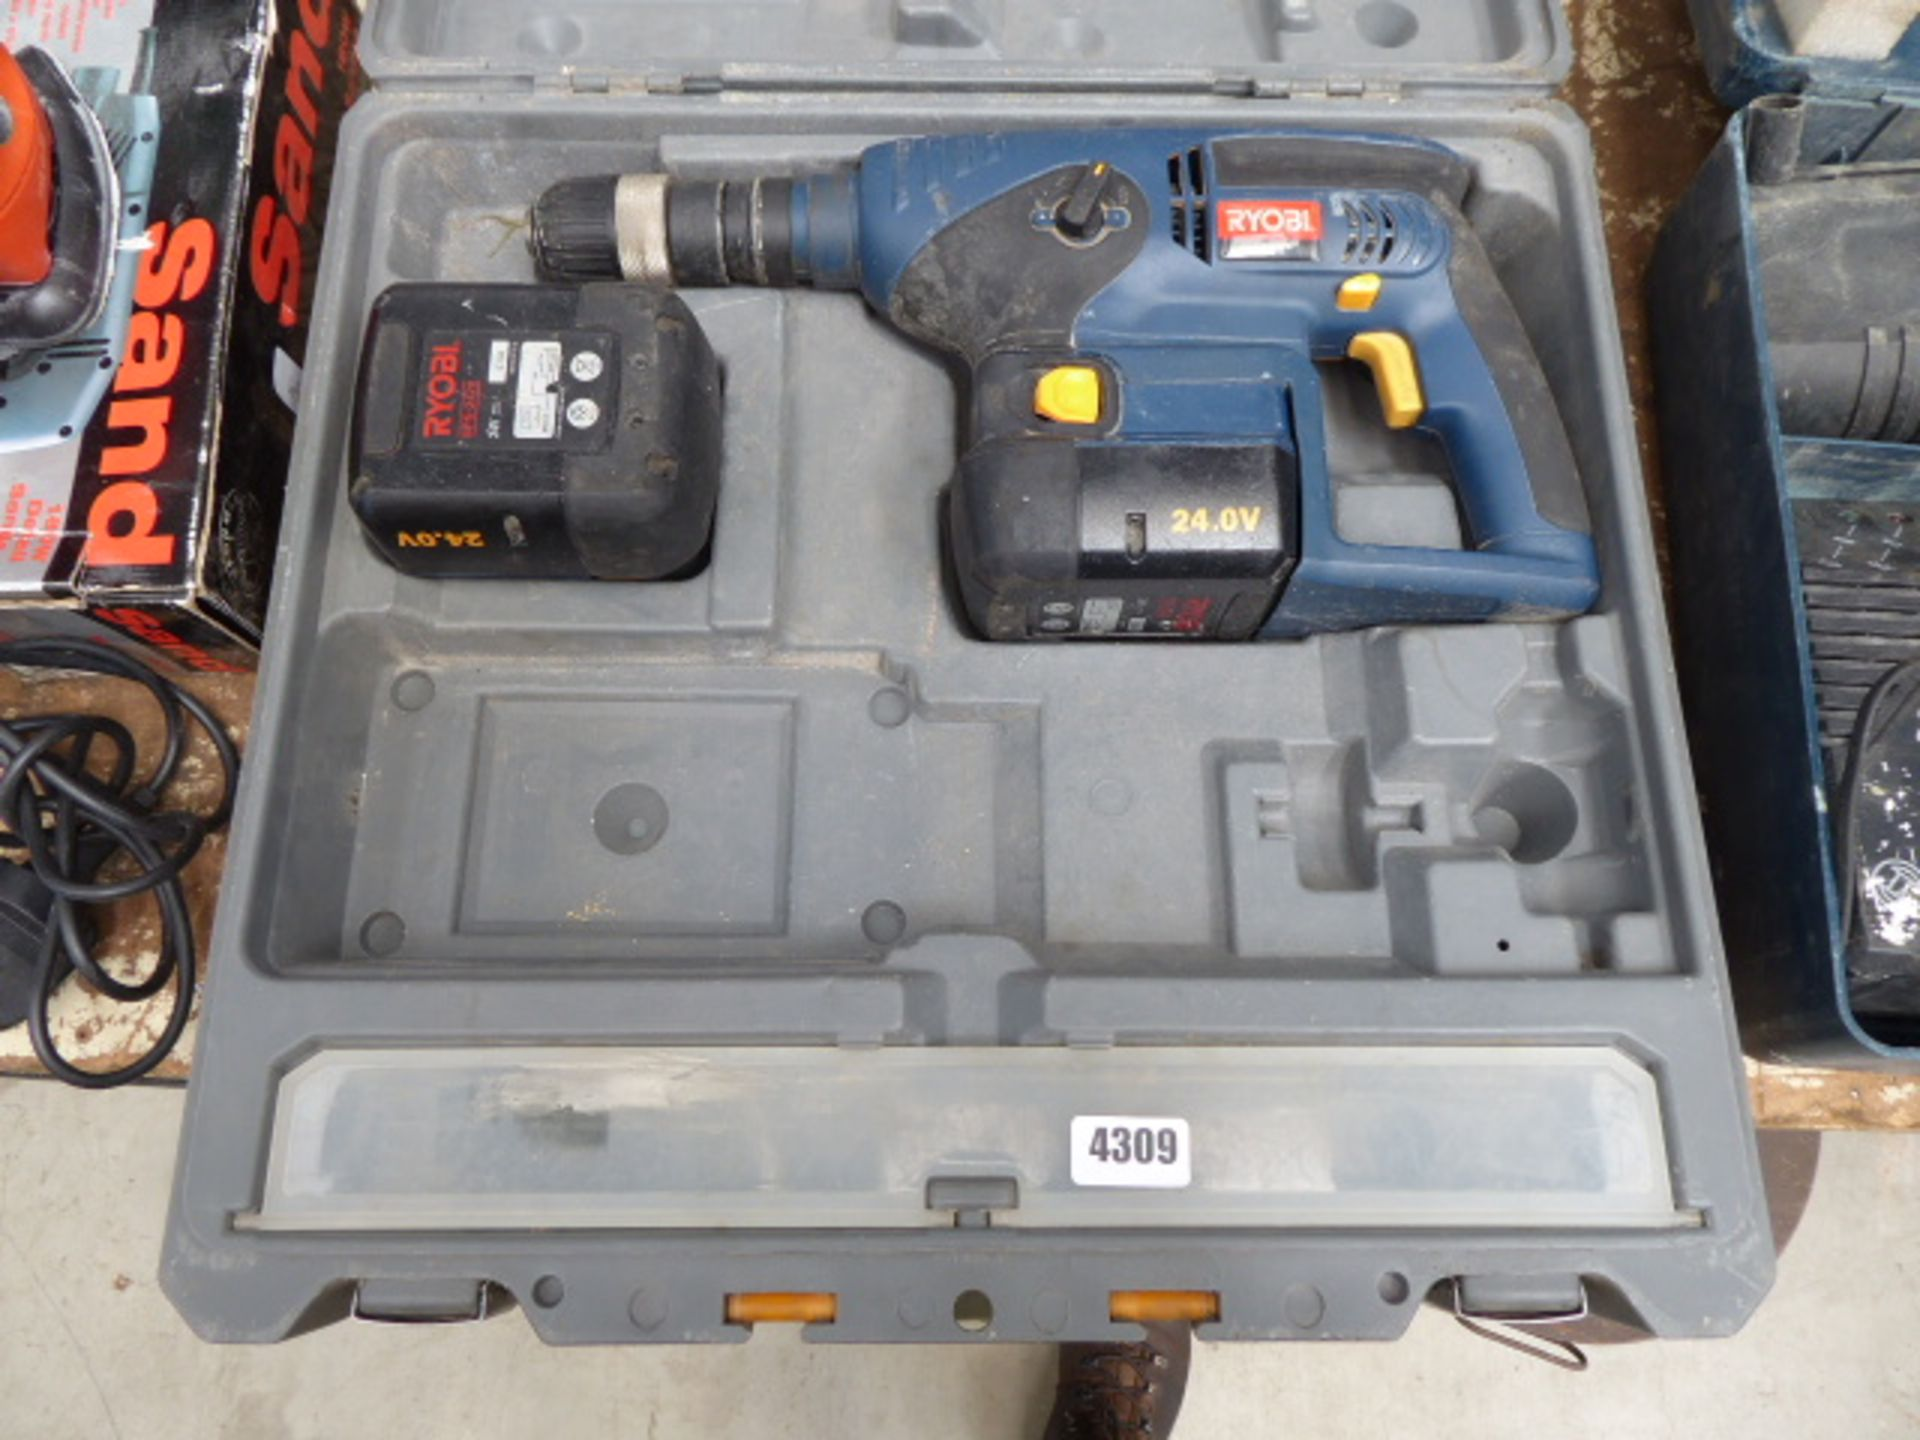 Lot 4309 - Ryobi 24v battery drill with 2 batteries no charger